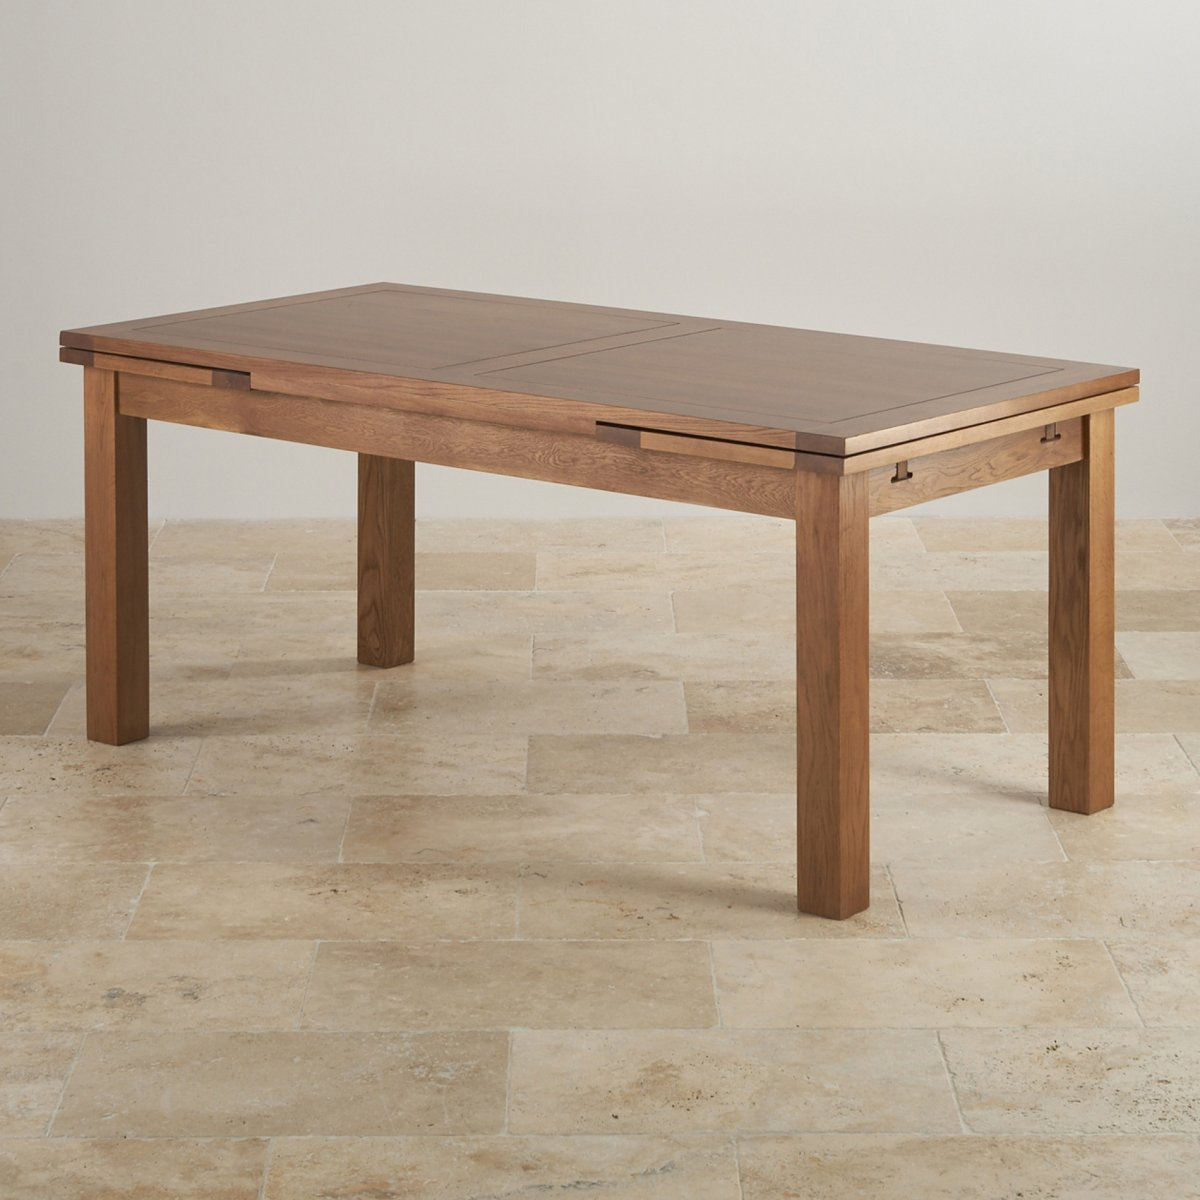 Extending Dining Table In Rustic Oak Oak Furniture Land